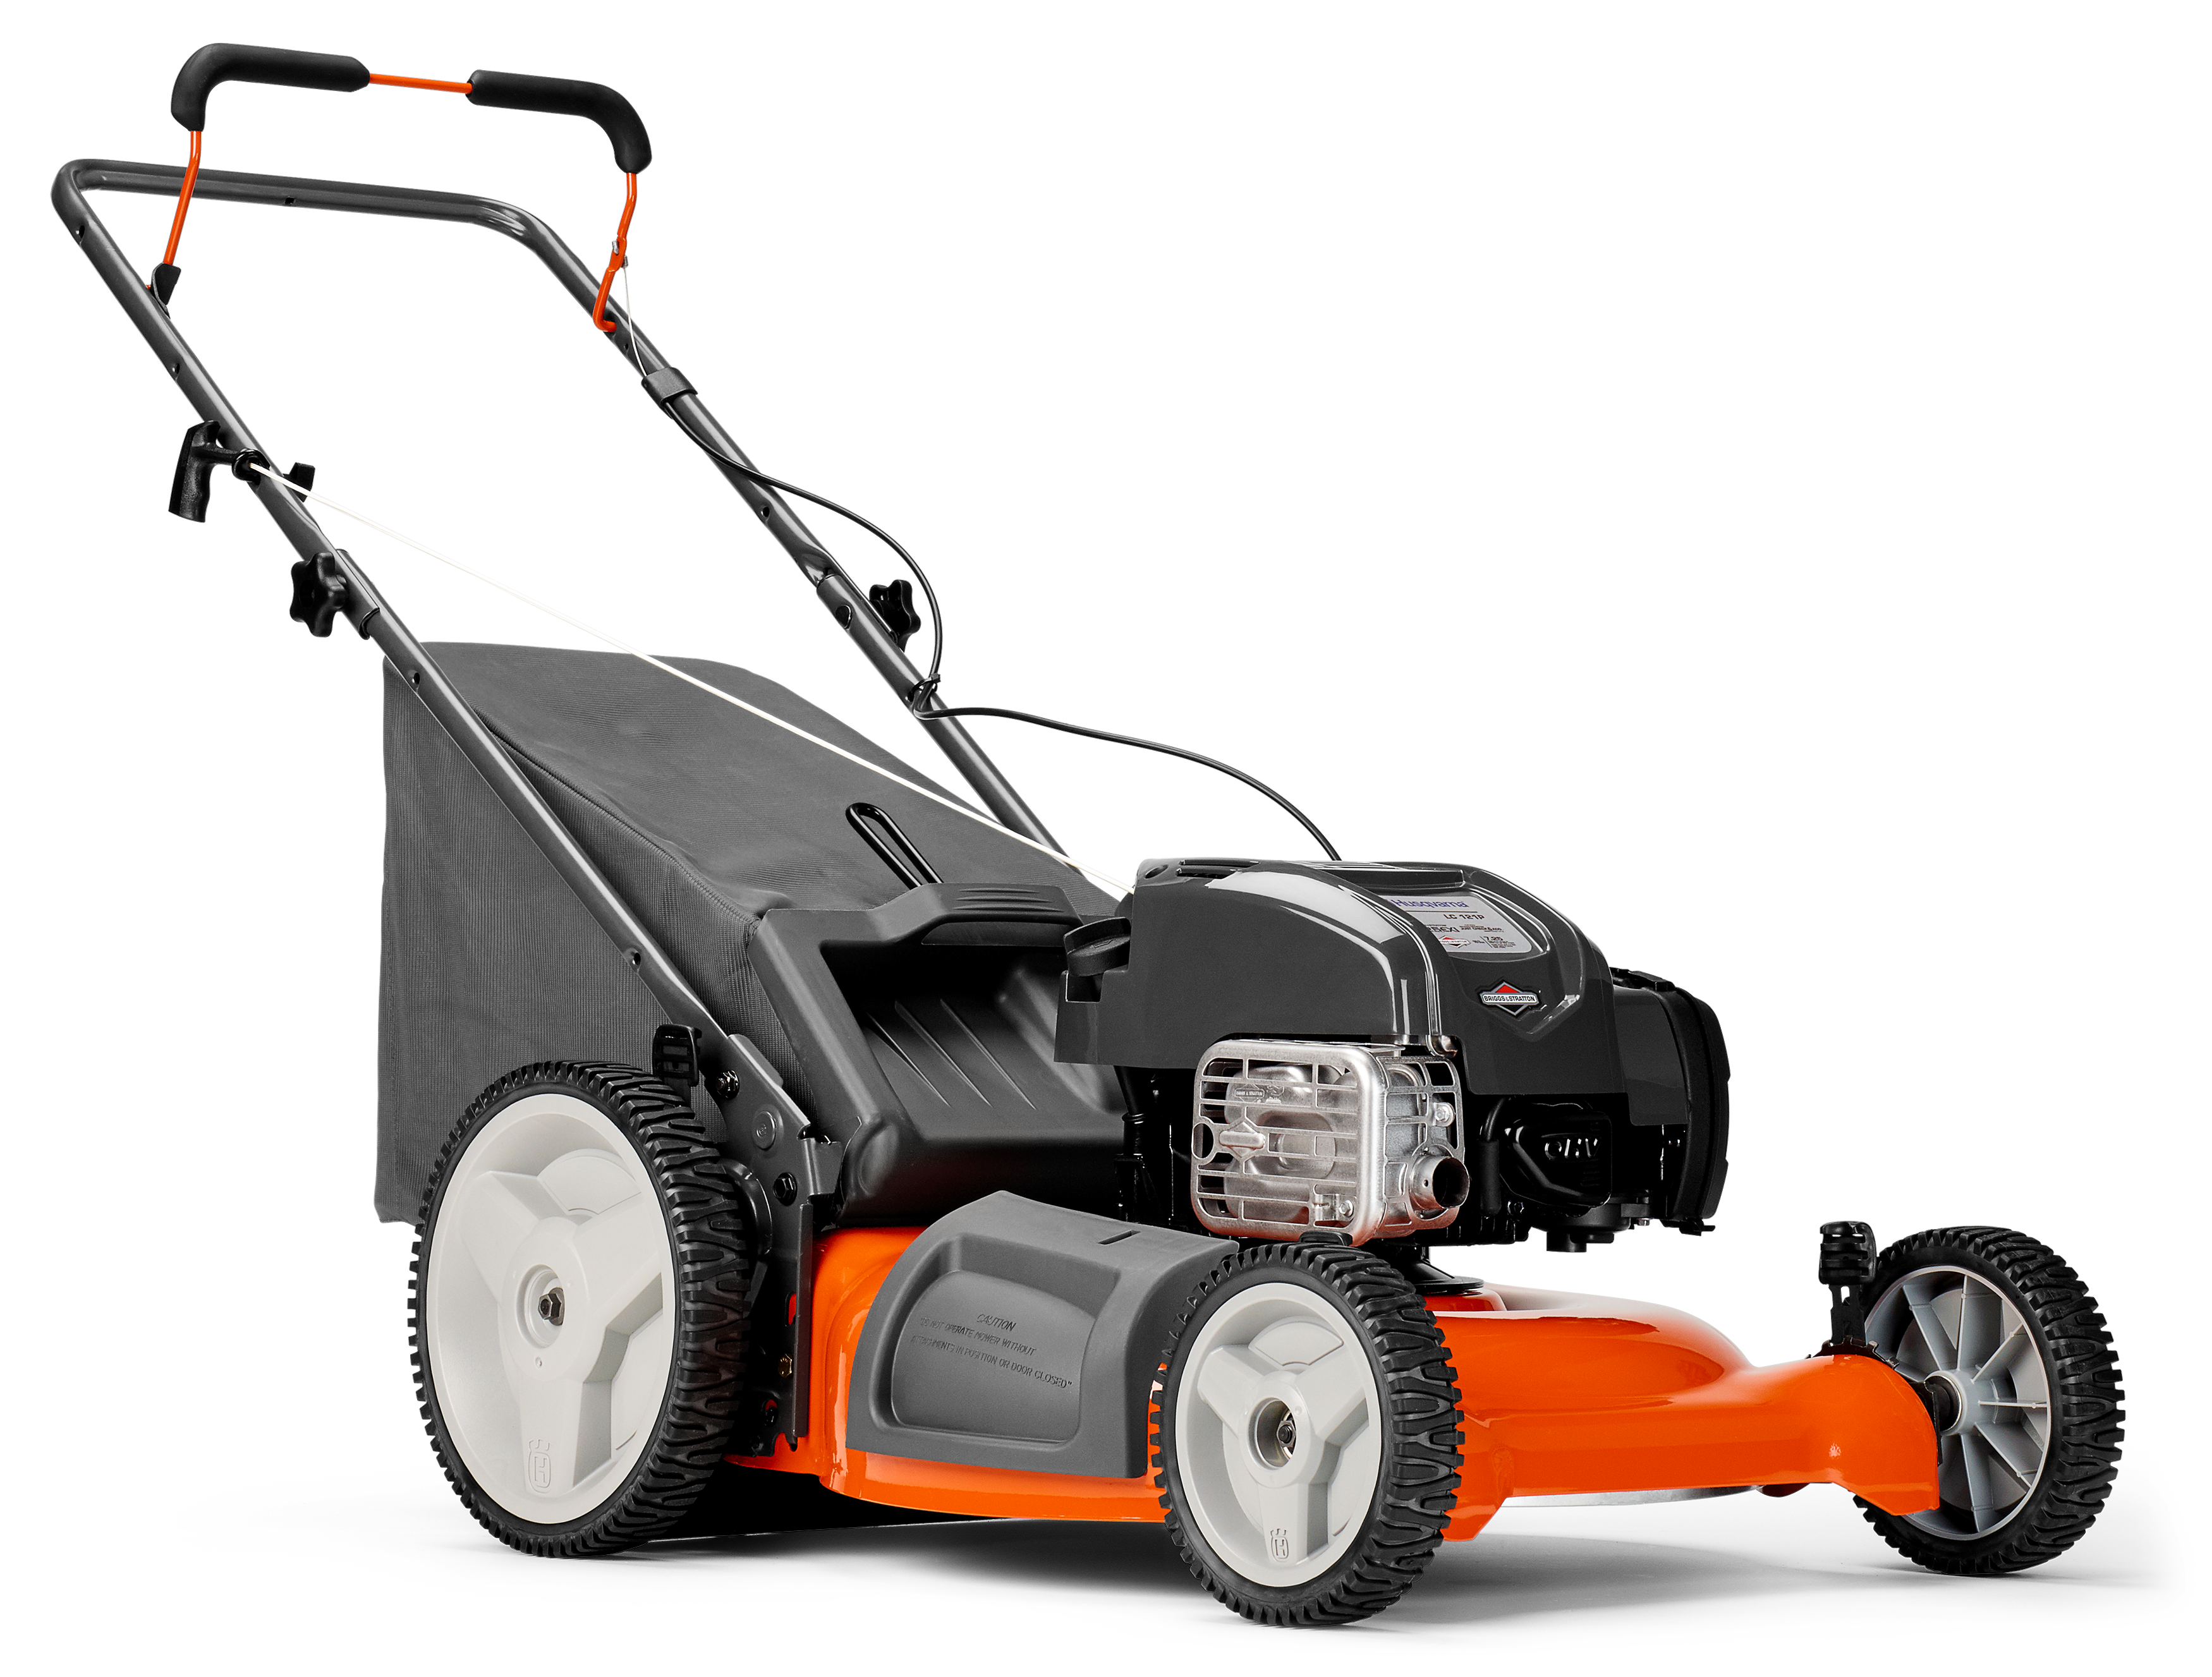 Image for LC121P Gas Push Lawn Mower                                                                                                       from HusqvarnaB2C